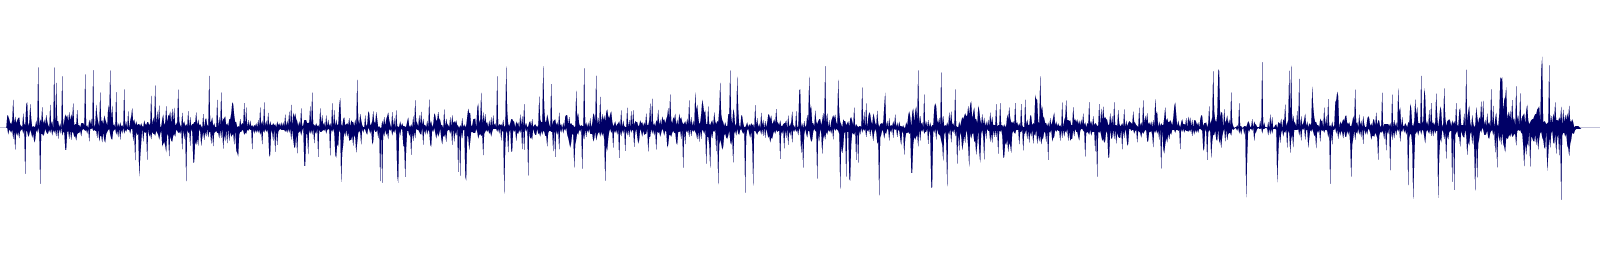 waveform of track #131743